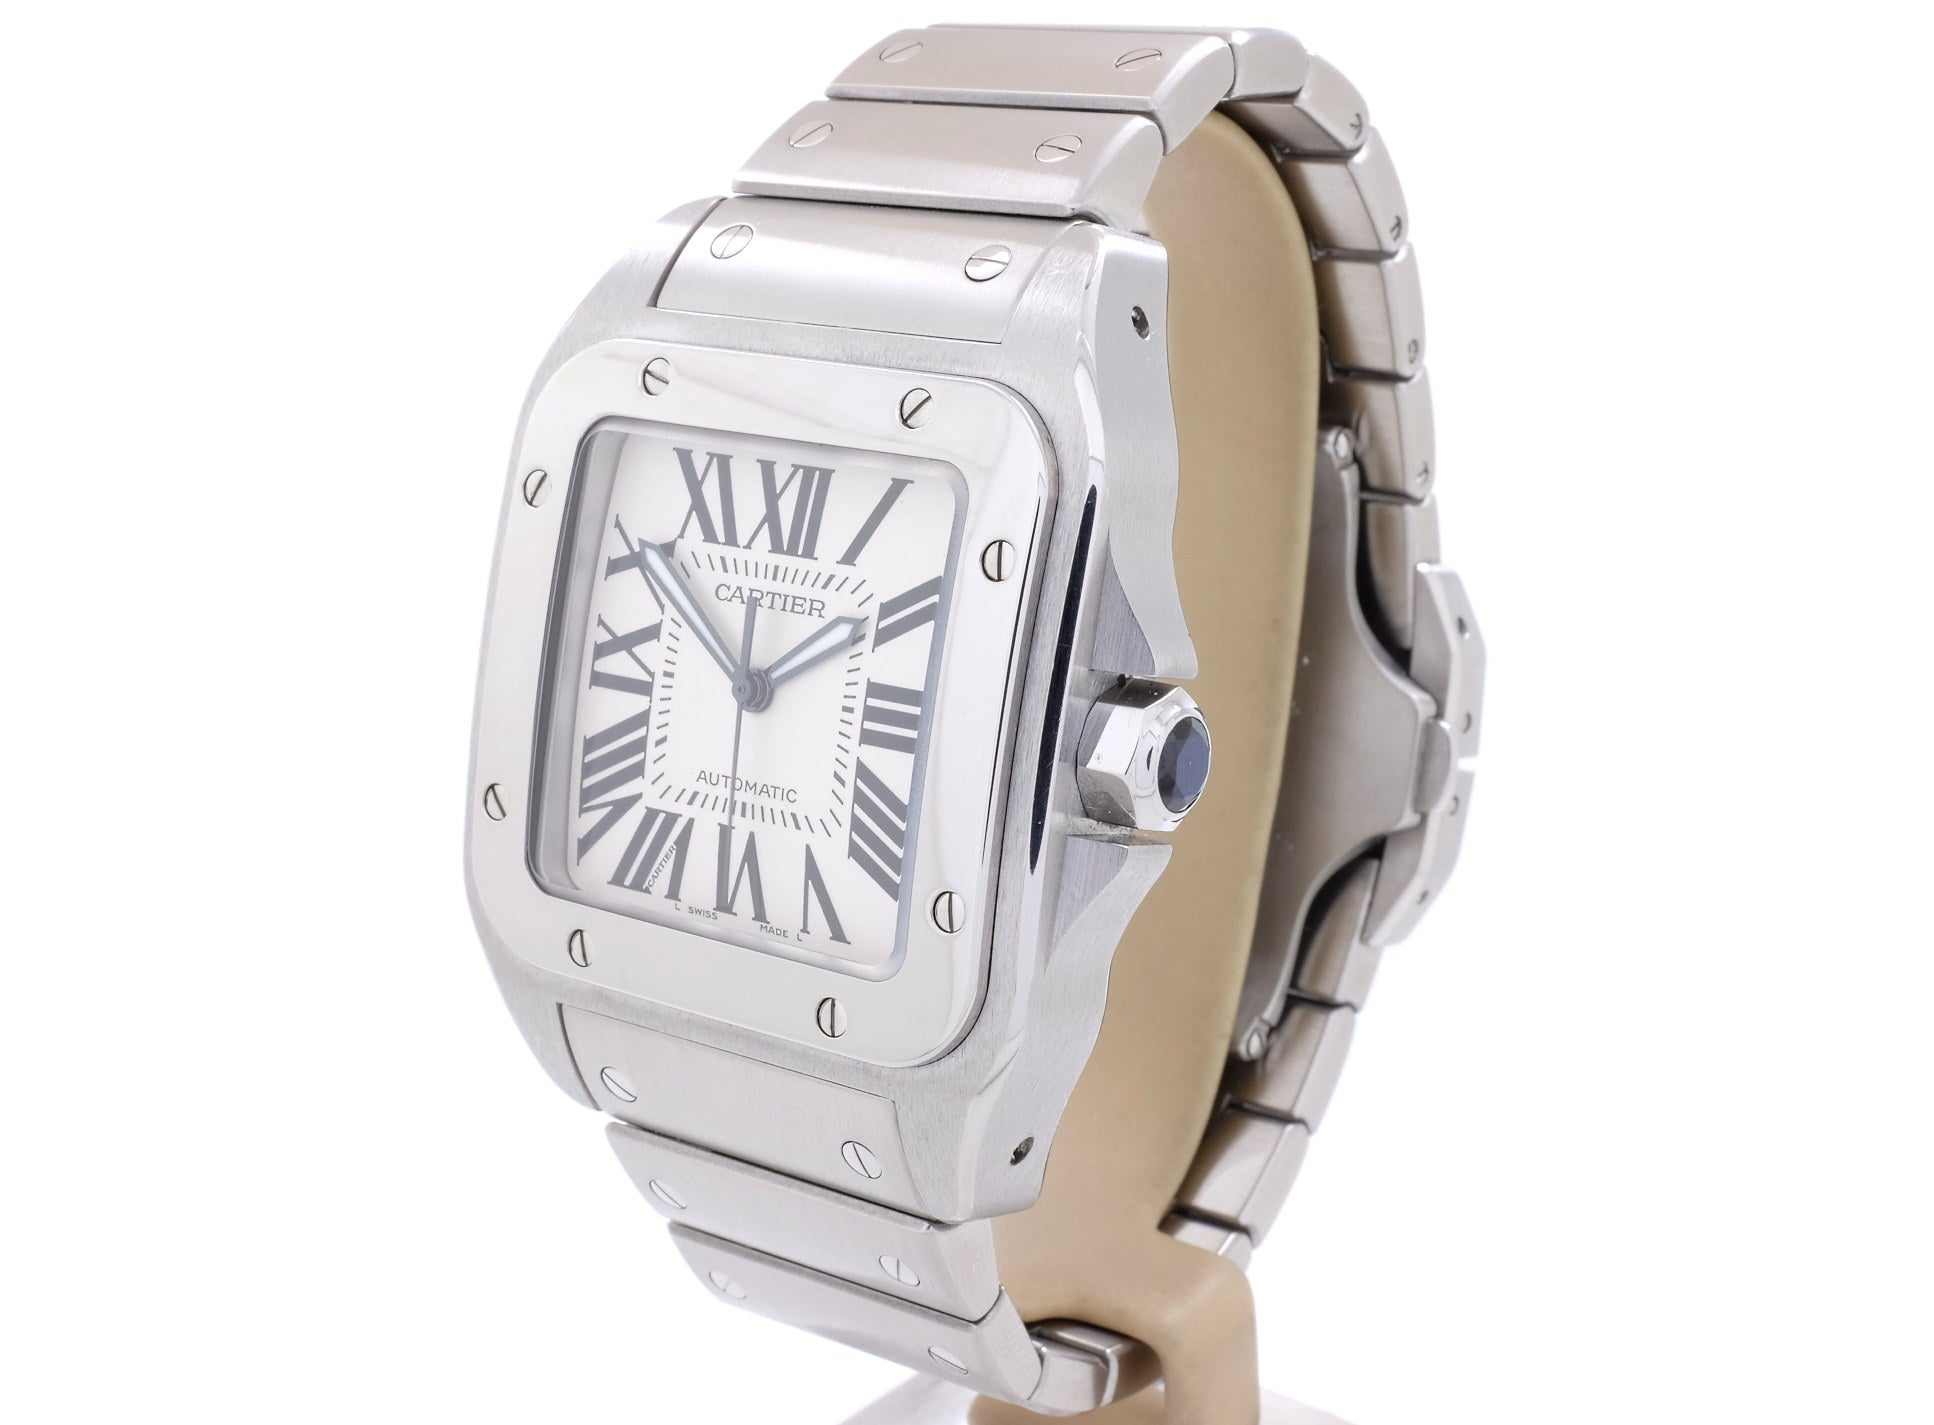 BIG 2005 Cartier SANTOS 100 XL in *Excellent* Condition